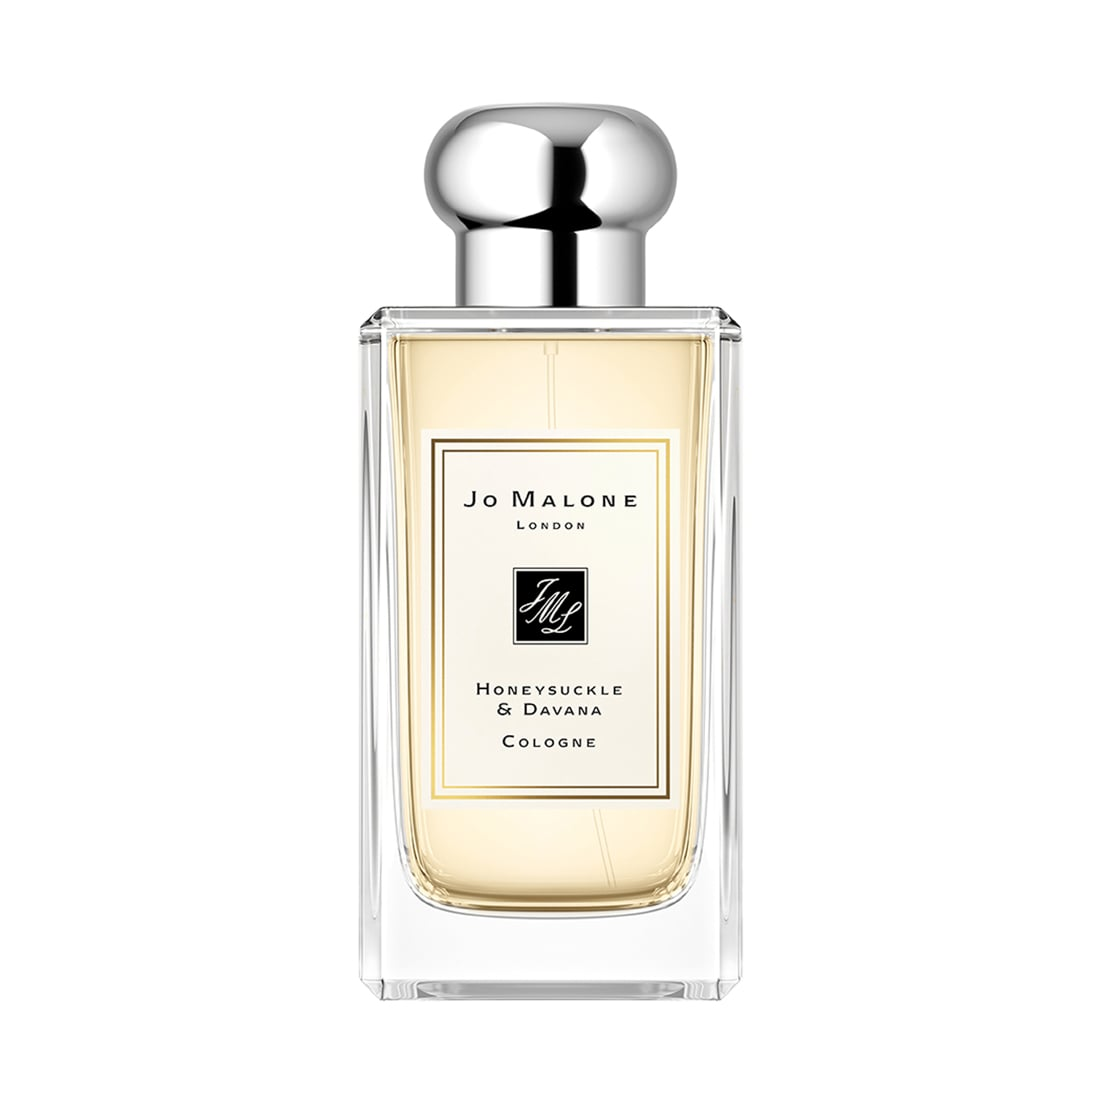 Honeysuckle & Davana Cologne 100ml